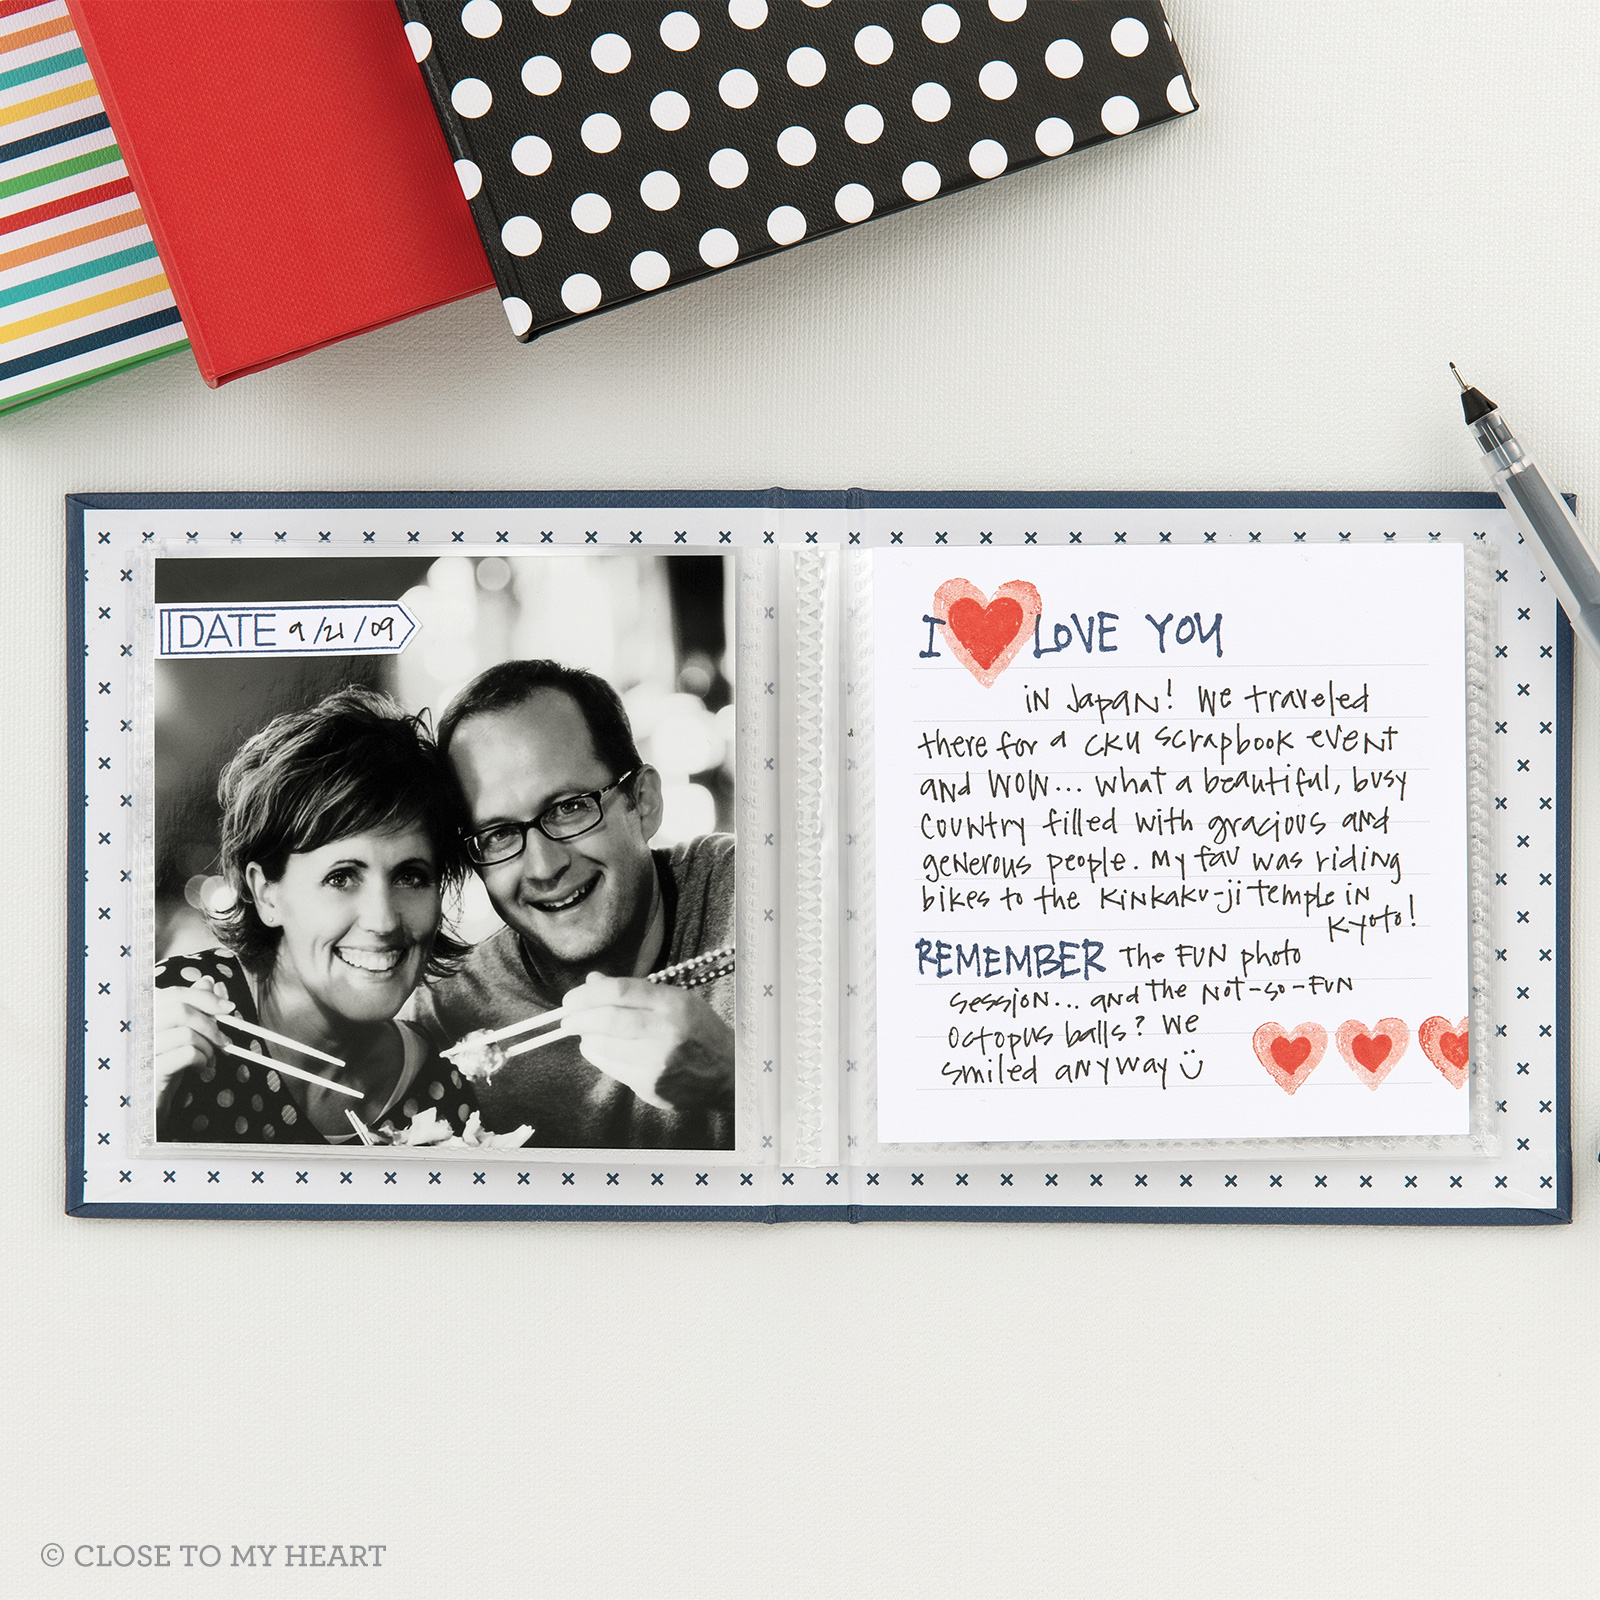 Story Starter Albums are the perfect place to record sweet memories of a person, place or thing that means a lot to you. Order yours at shaunnarichards.closetomyheart.com.au